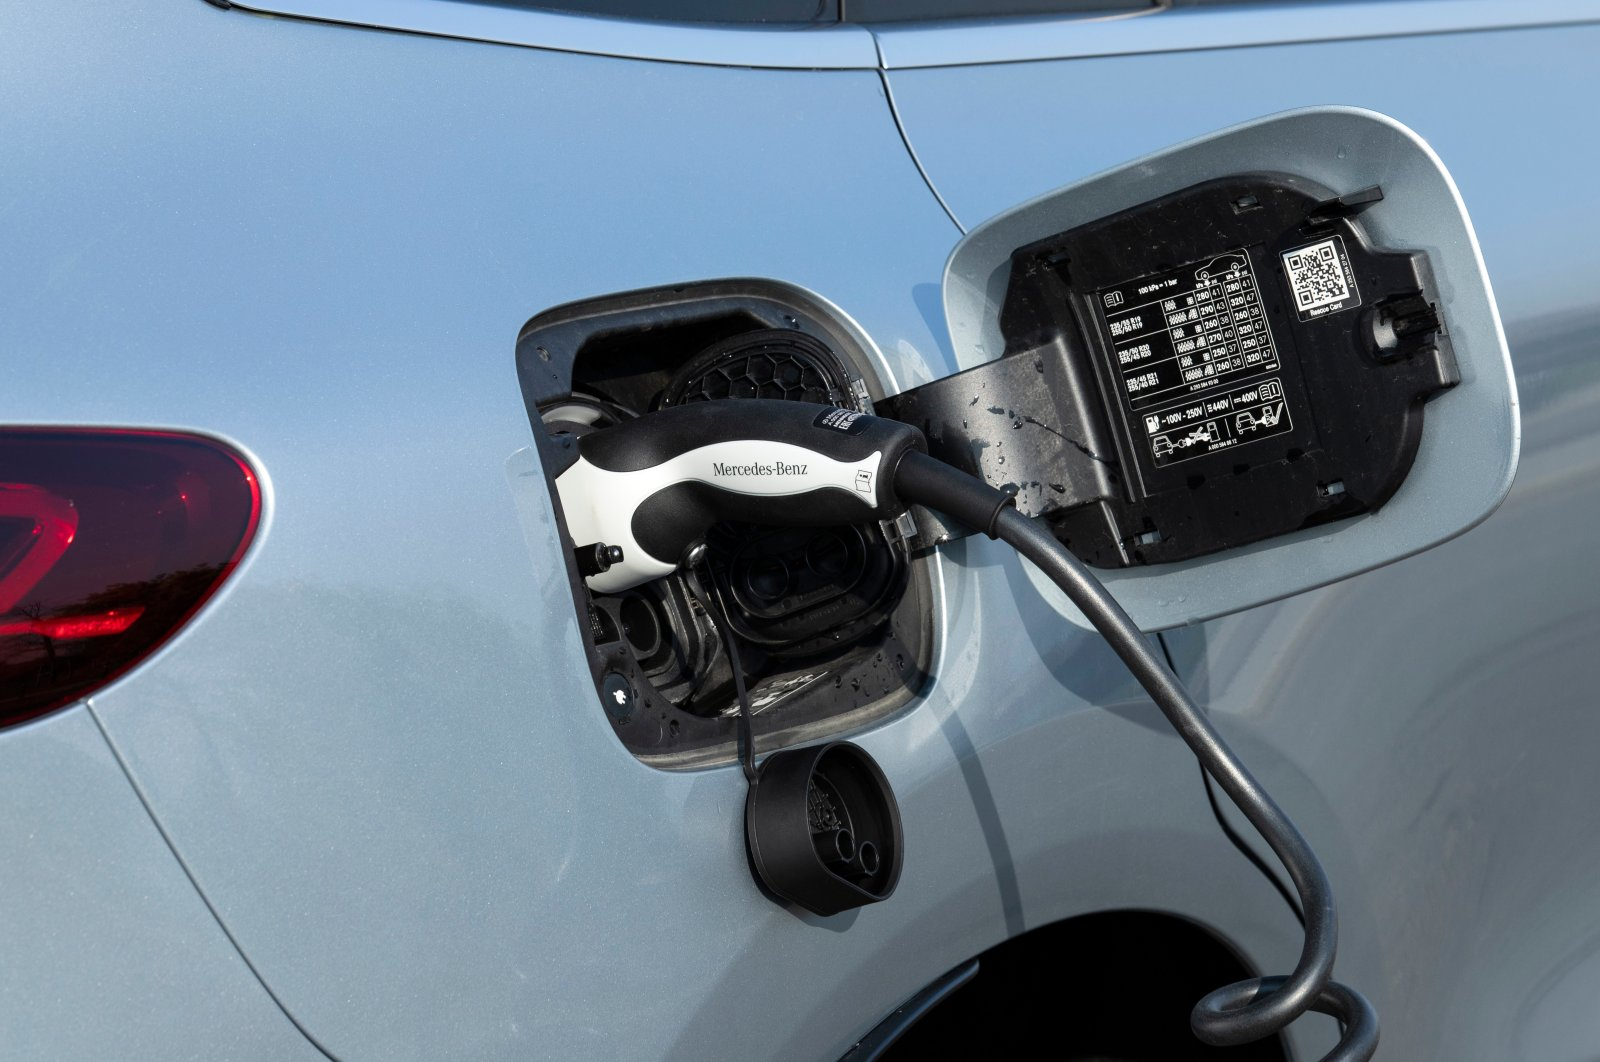 An electric car is seen plugged in at a charging point for electric vehicles in Istanbul, Turkey, Jan. 19, 2021. (Shutterstock Photo)